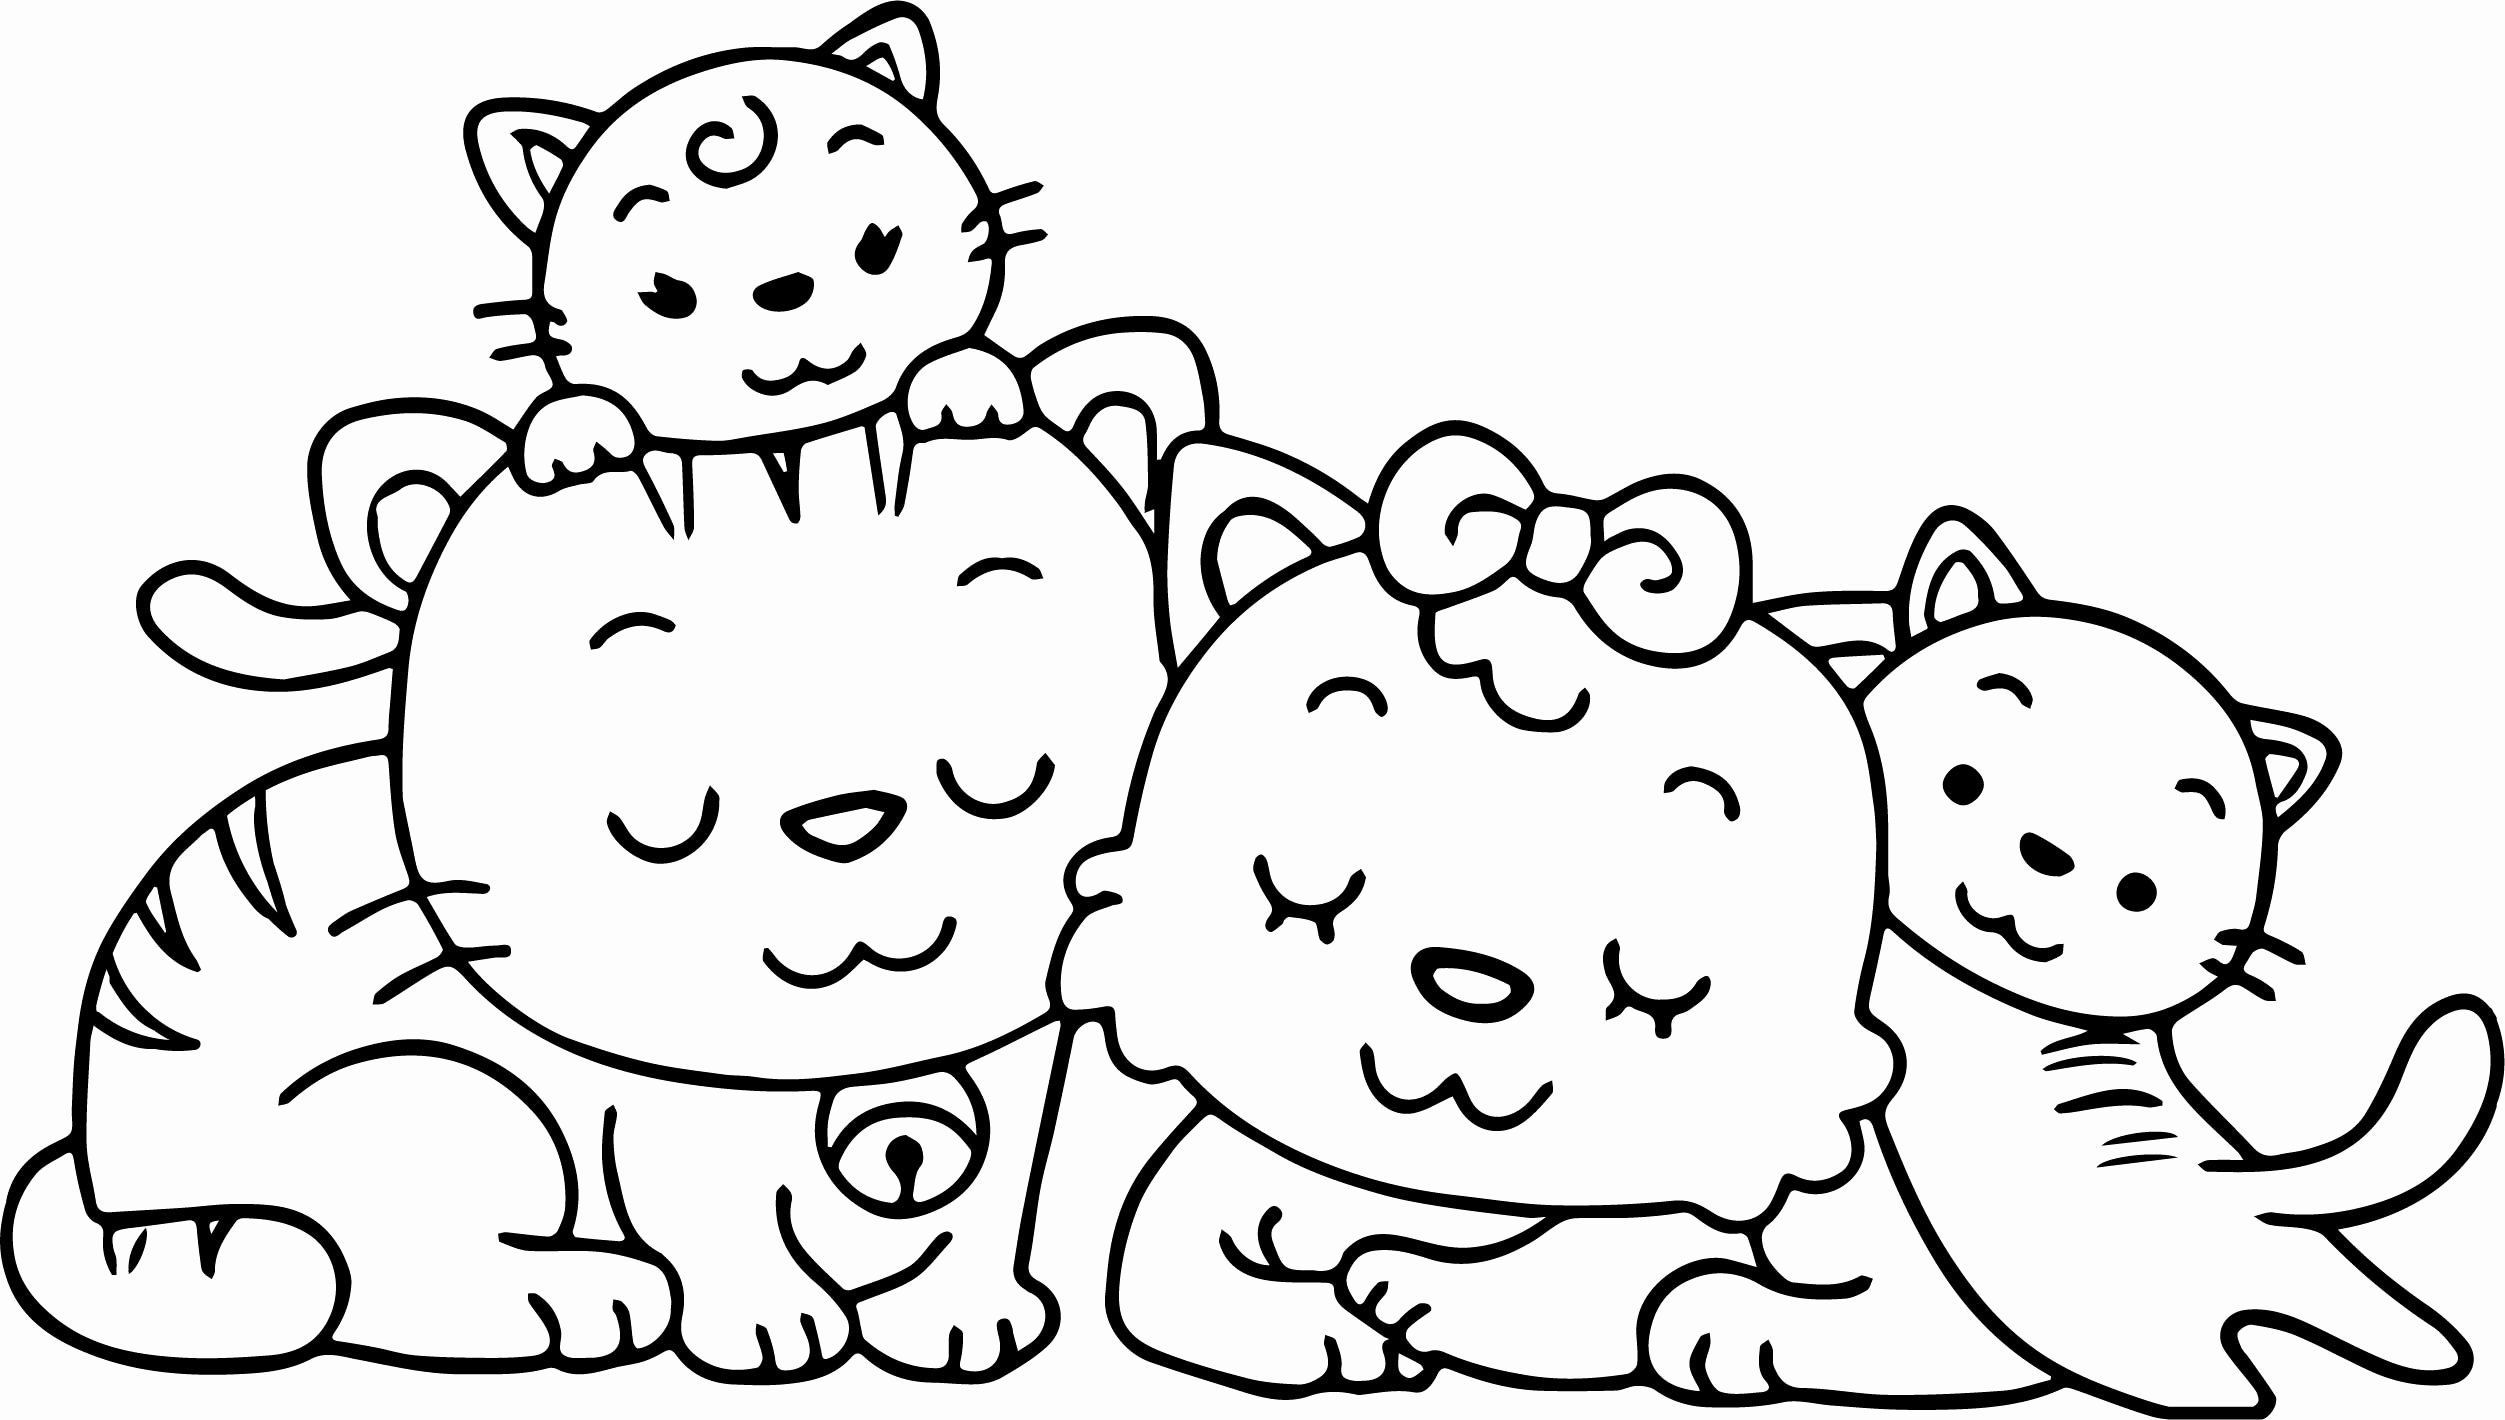 Cat Playing With Three Kittens Cat Coloring Page Kittens Coloring Kitty Coloring